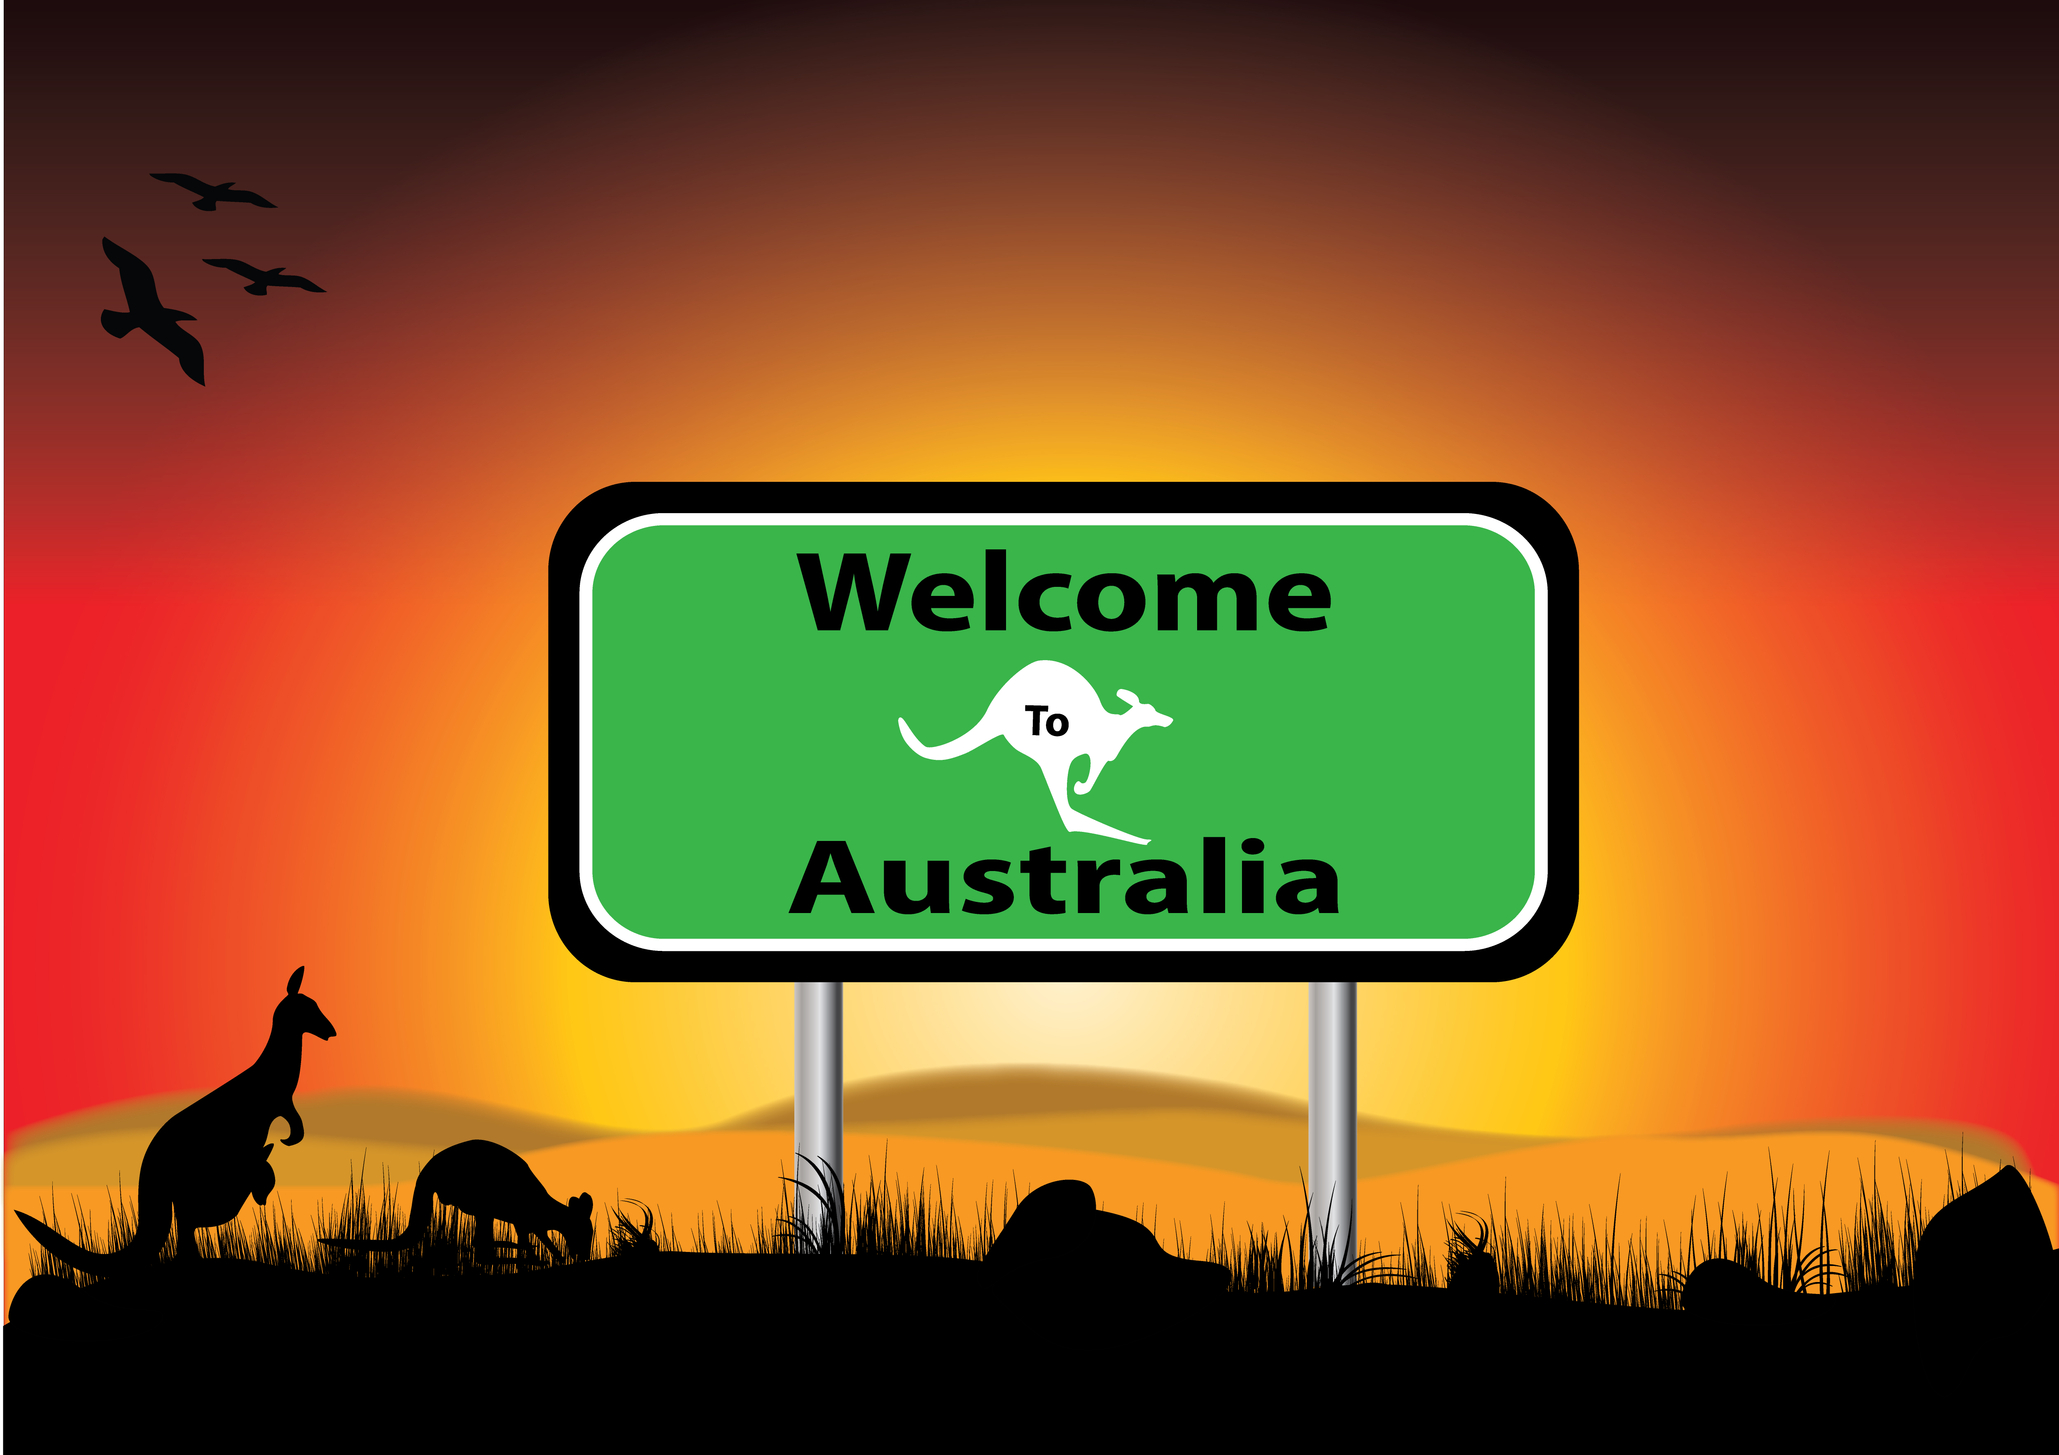 http://www.dreamstime.com/royalty-free-stock-photography-welcome-to-australia-sunset-image24831077